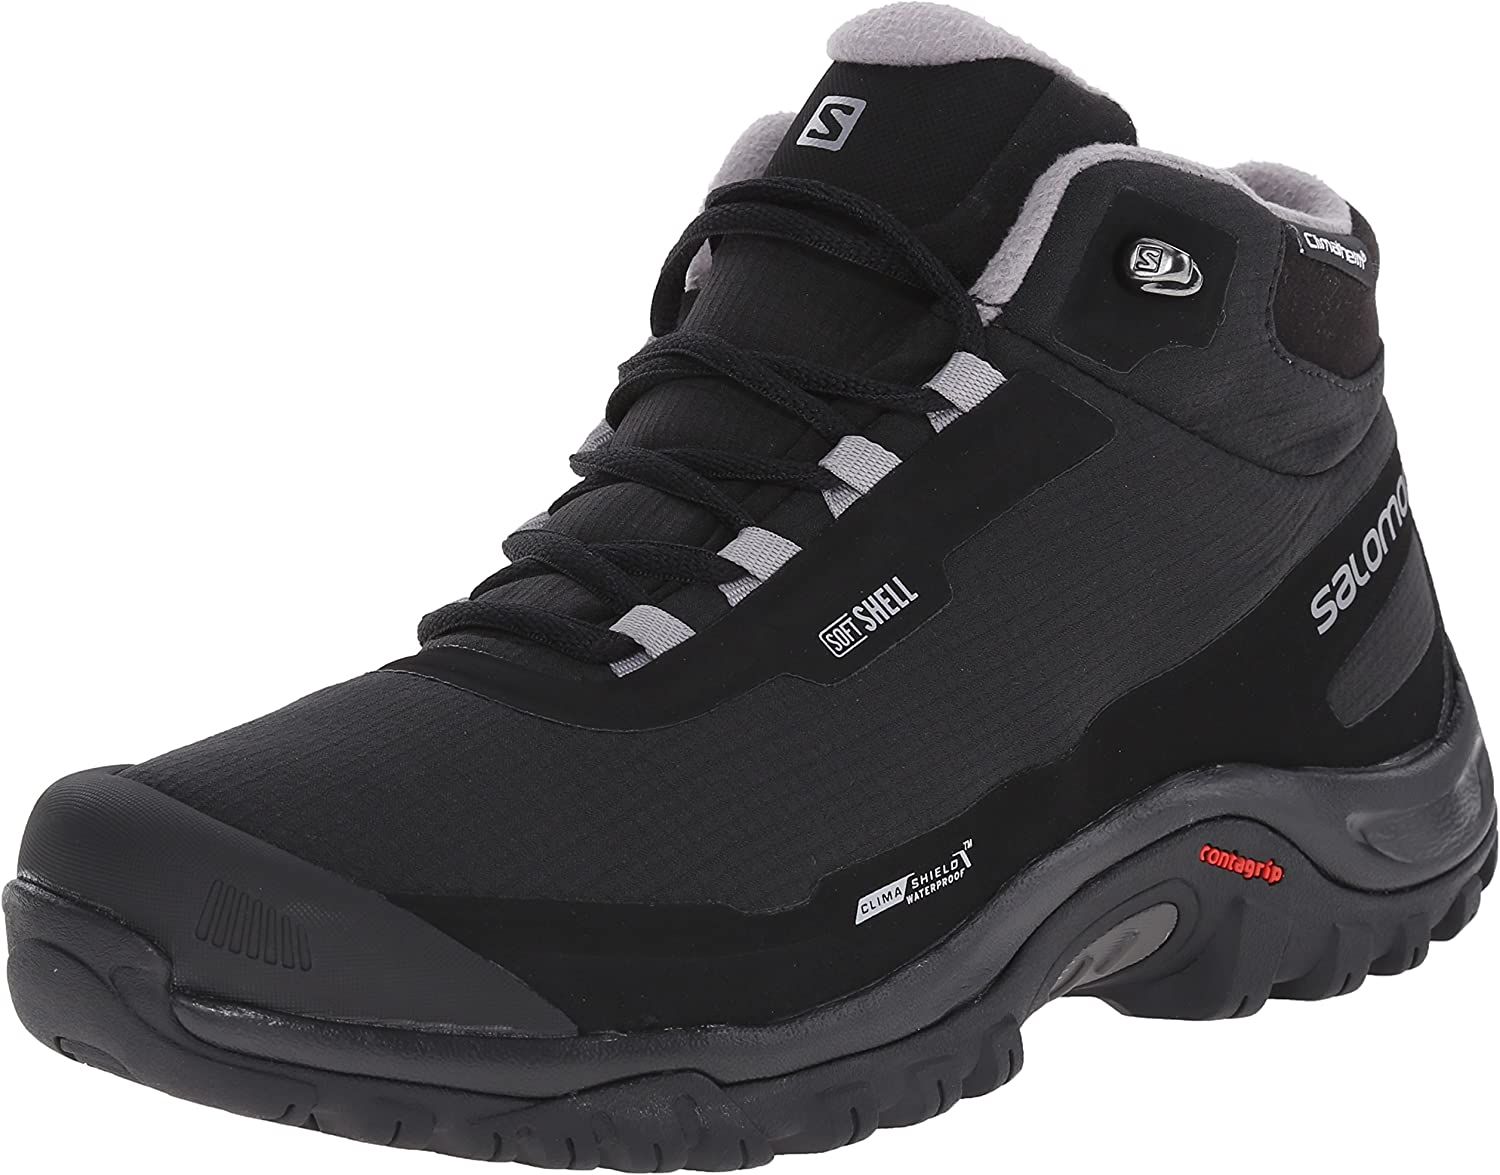 Salomon Men's Shelter Cs Wp Snow Boot